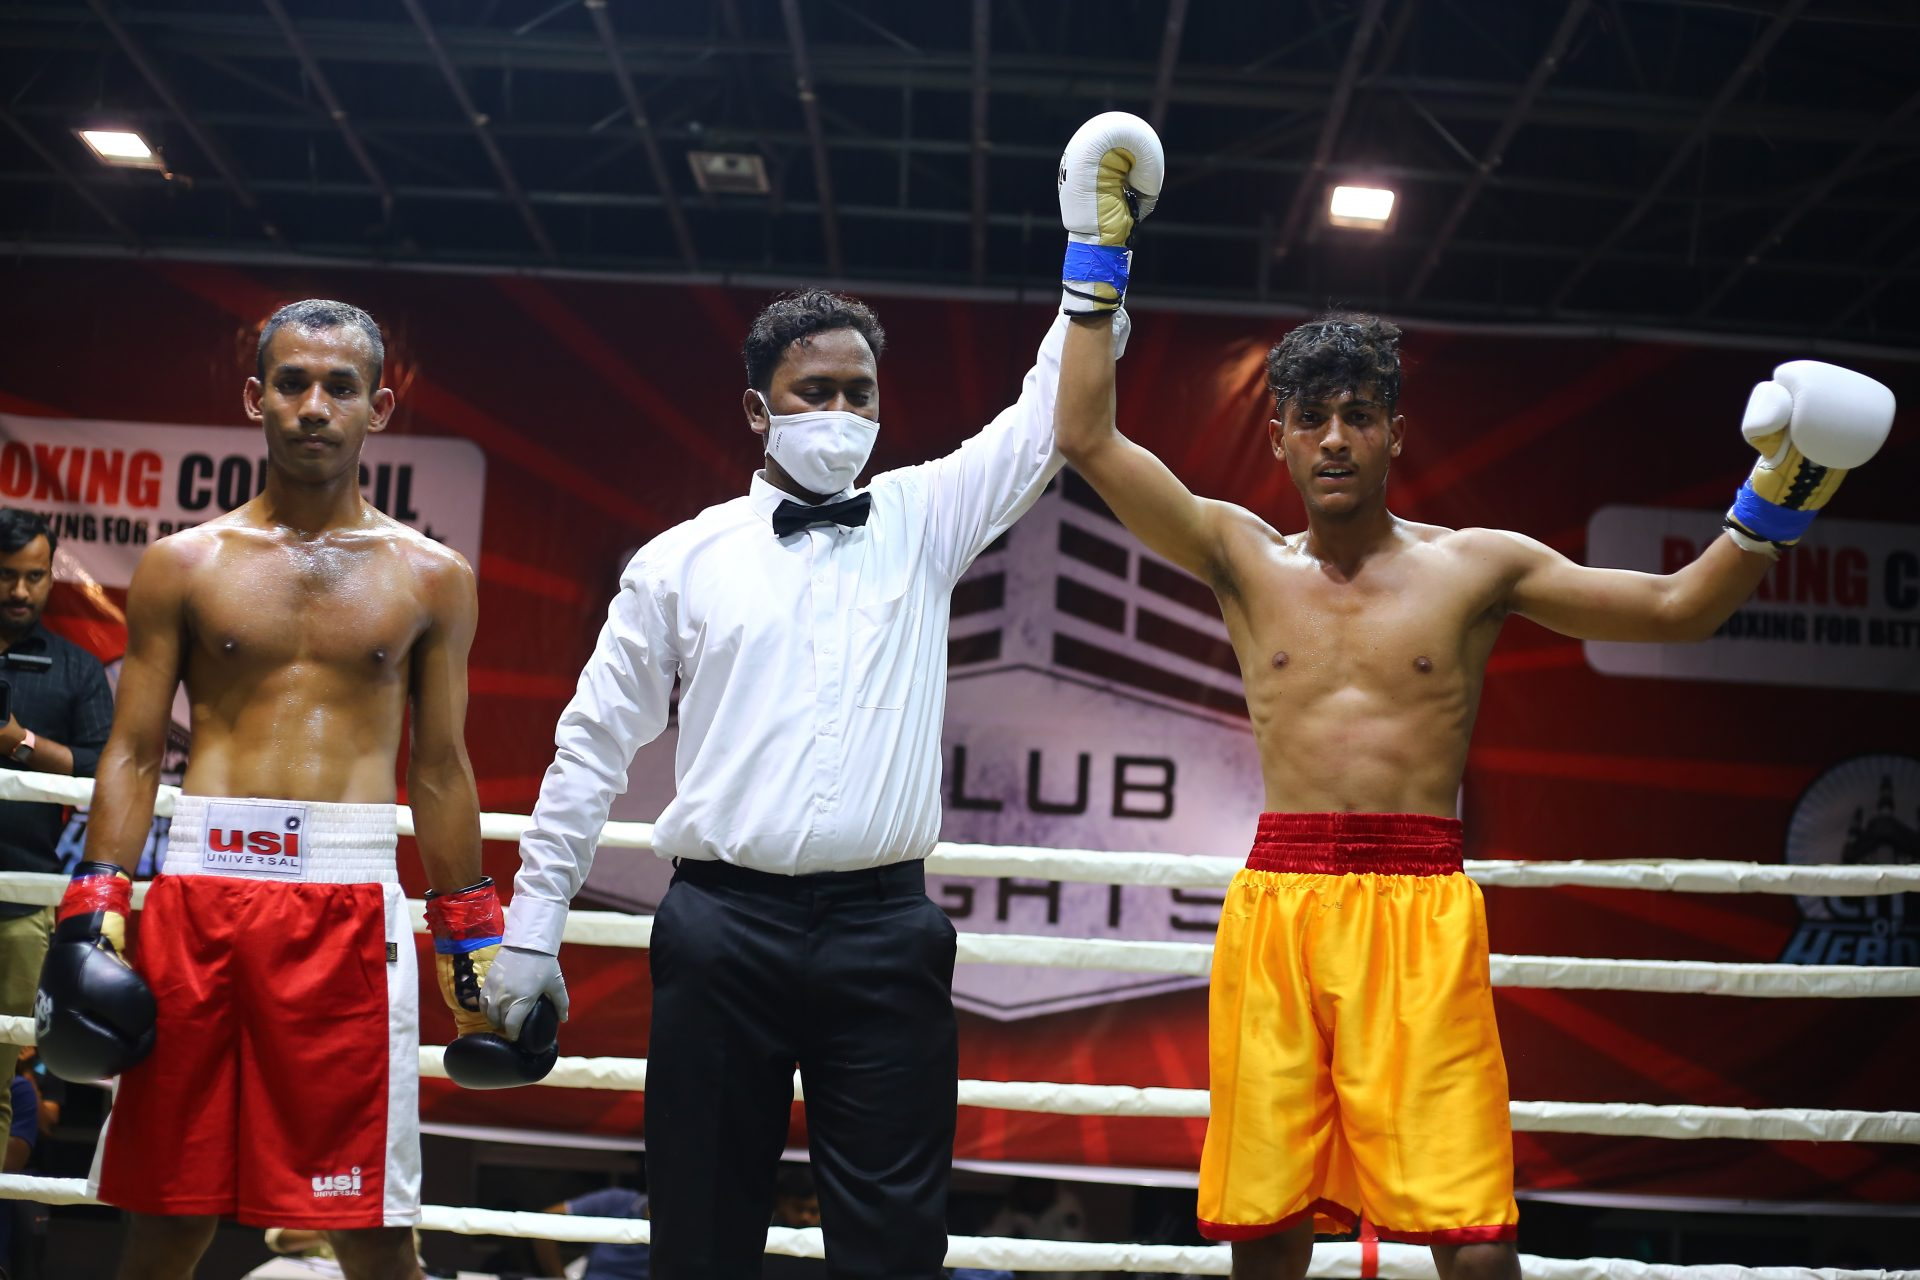 Club Fights: Deccan Conquest III: Full Results and winners - Club Fights